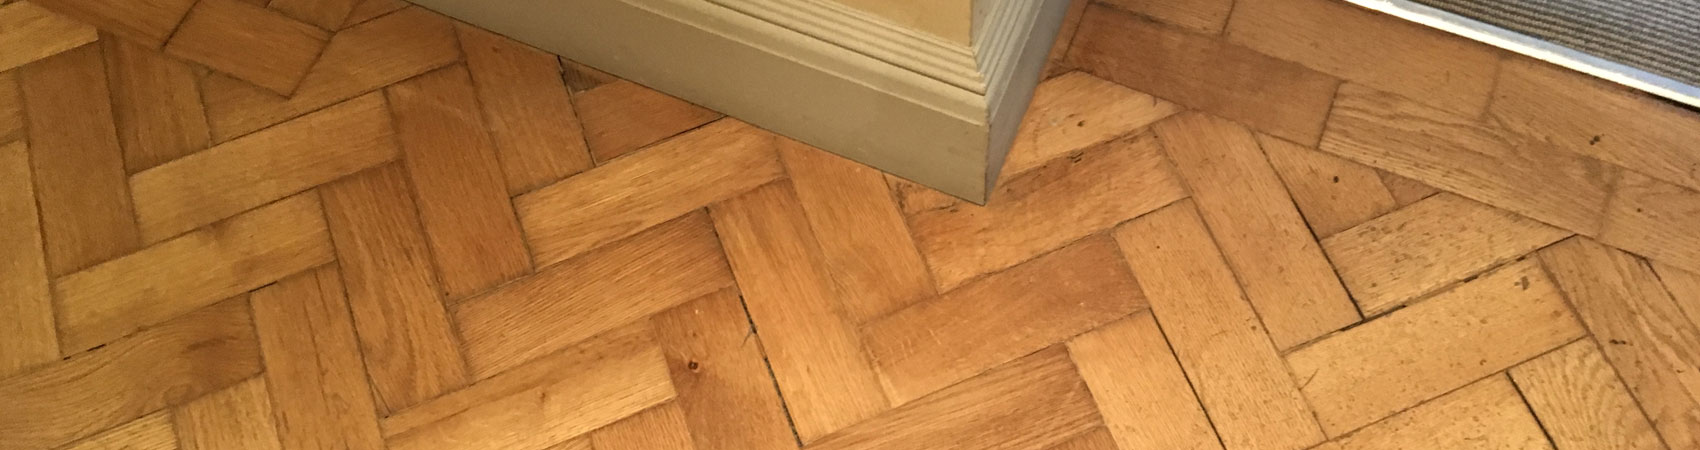 Parquet Flooring in Production Pre Finished